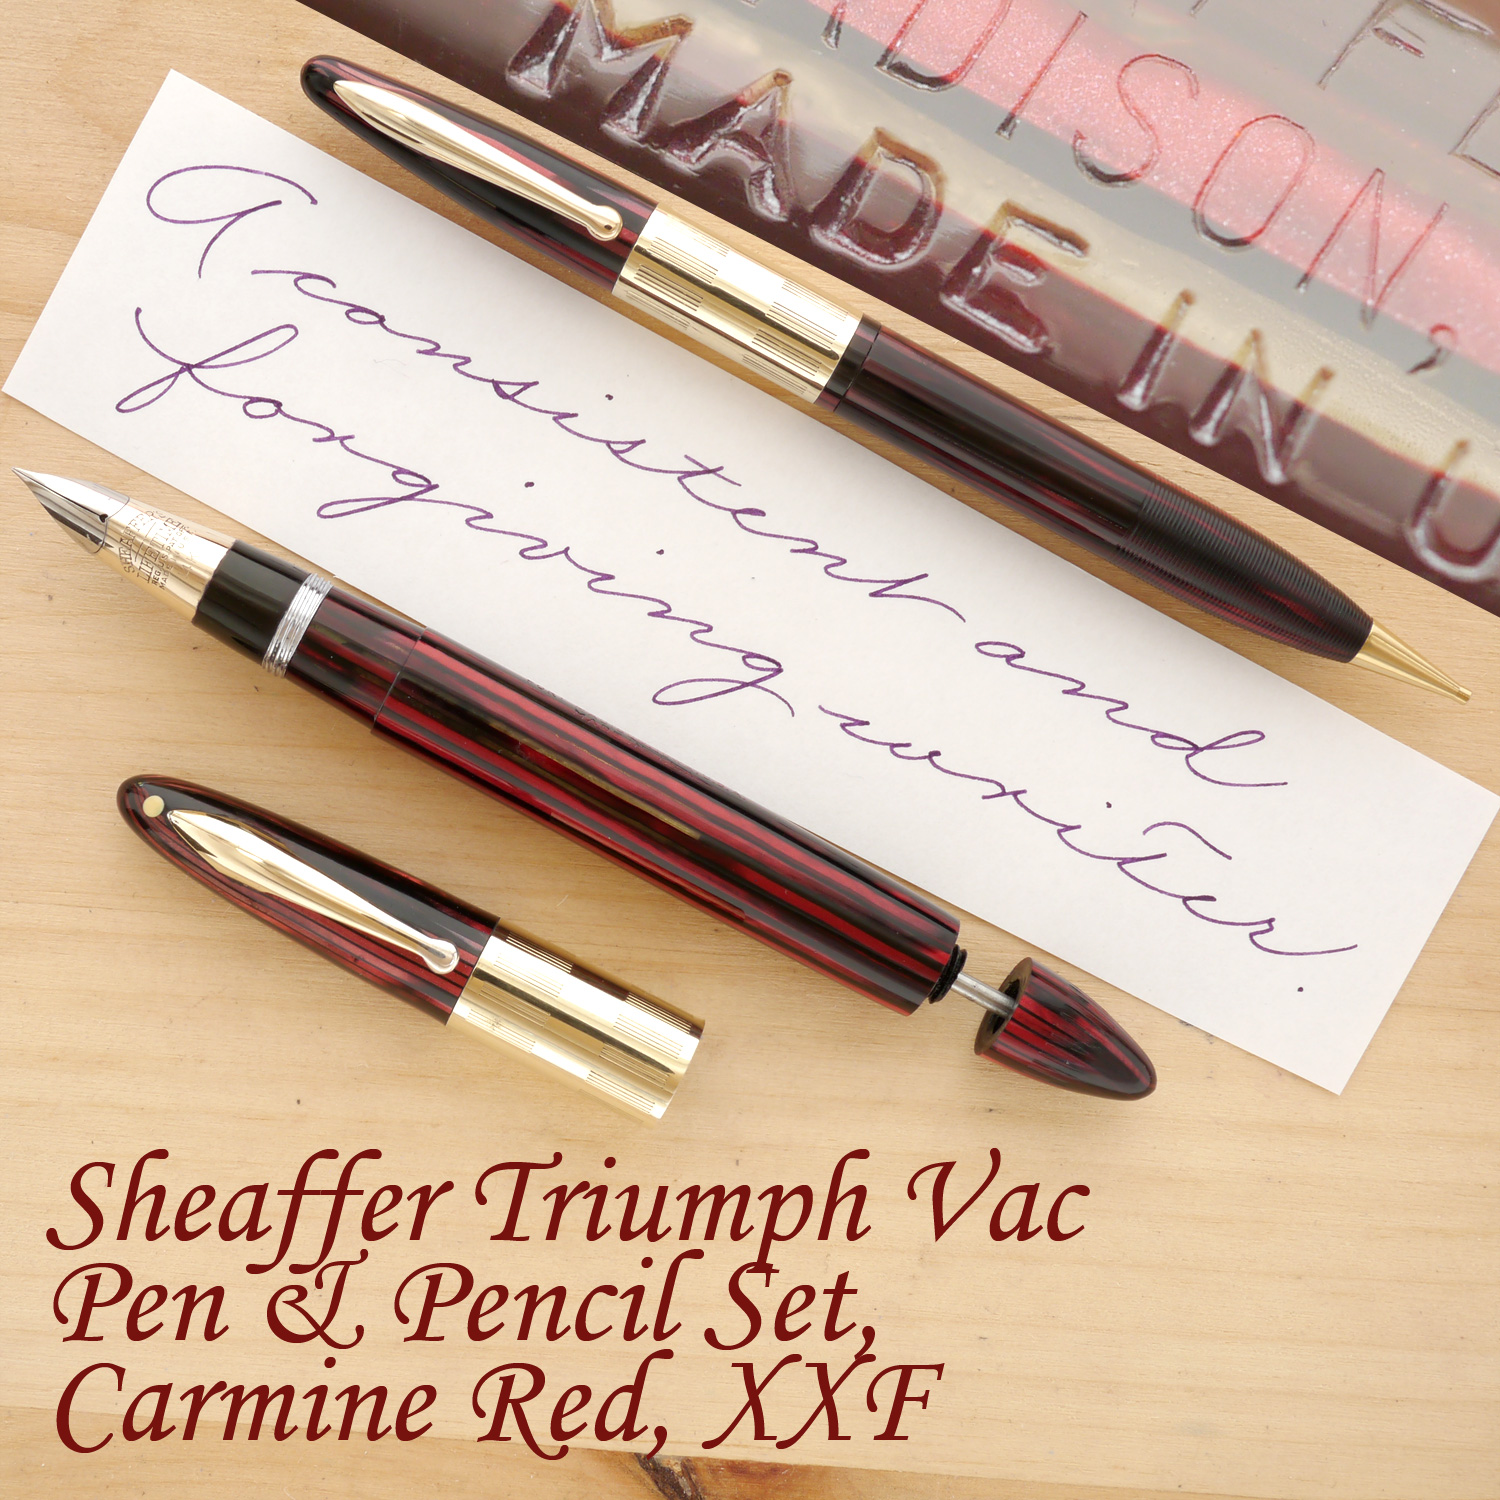 Sheaffer Triumph Vac Fountain Pen, Carmine Red, XXF, uncapped, with the plunger partially extended